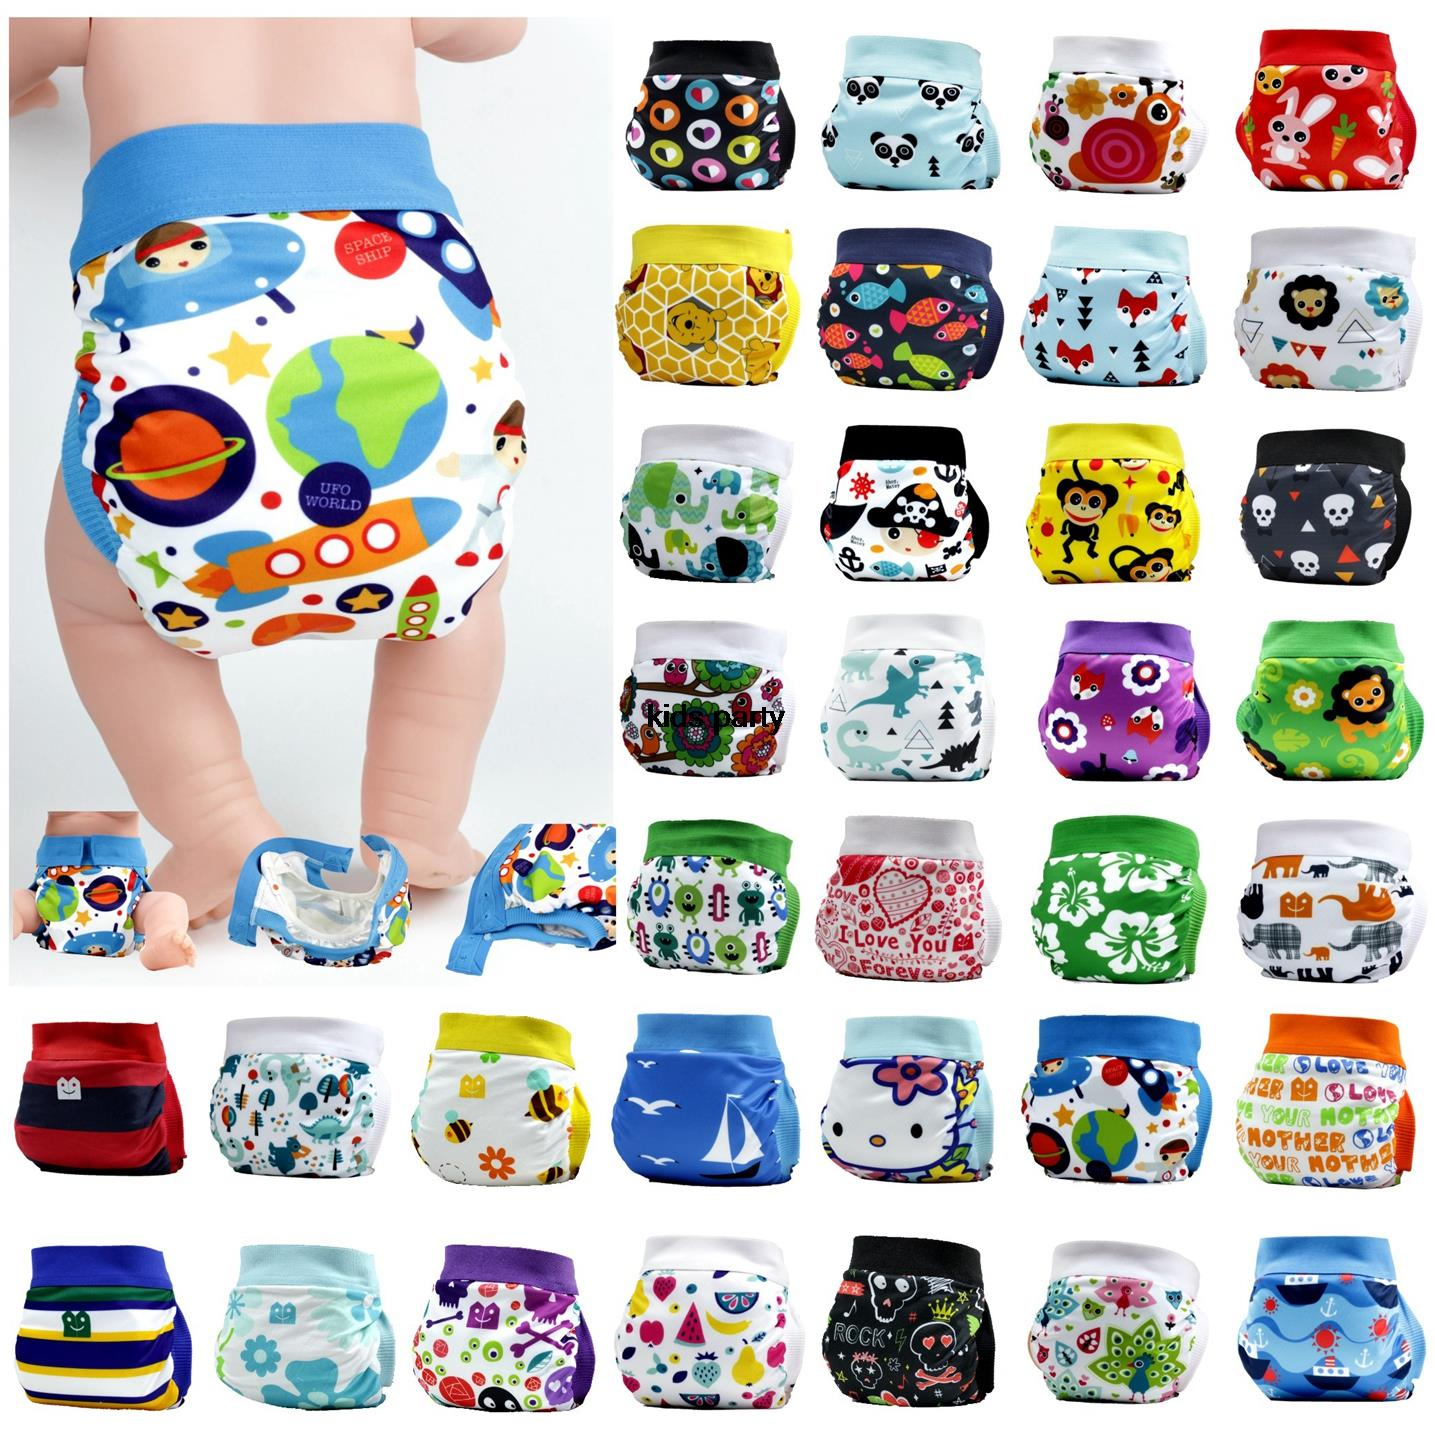 efff017b8f762 Freeshipping-2016-Gladbaby-including-pouches-with-snap-NEW-PRINT-cloth-diaper-baby-nappies-pocket-diapers-diaper.jpg